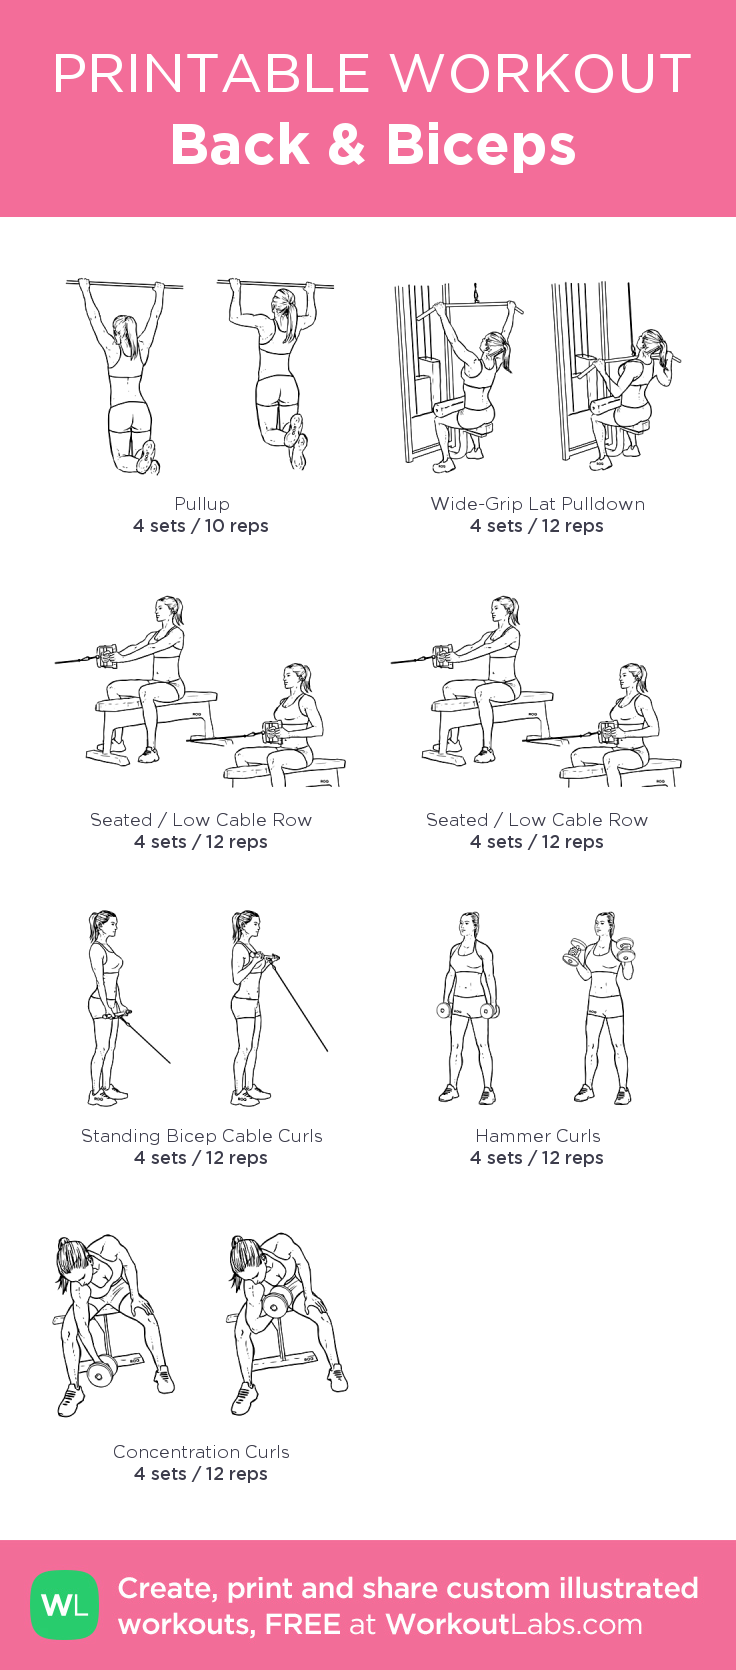 Back Amp Biceps My Custom Printable Workout By Workoutlabs